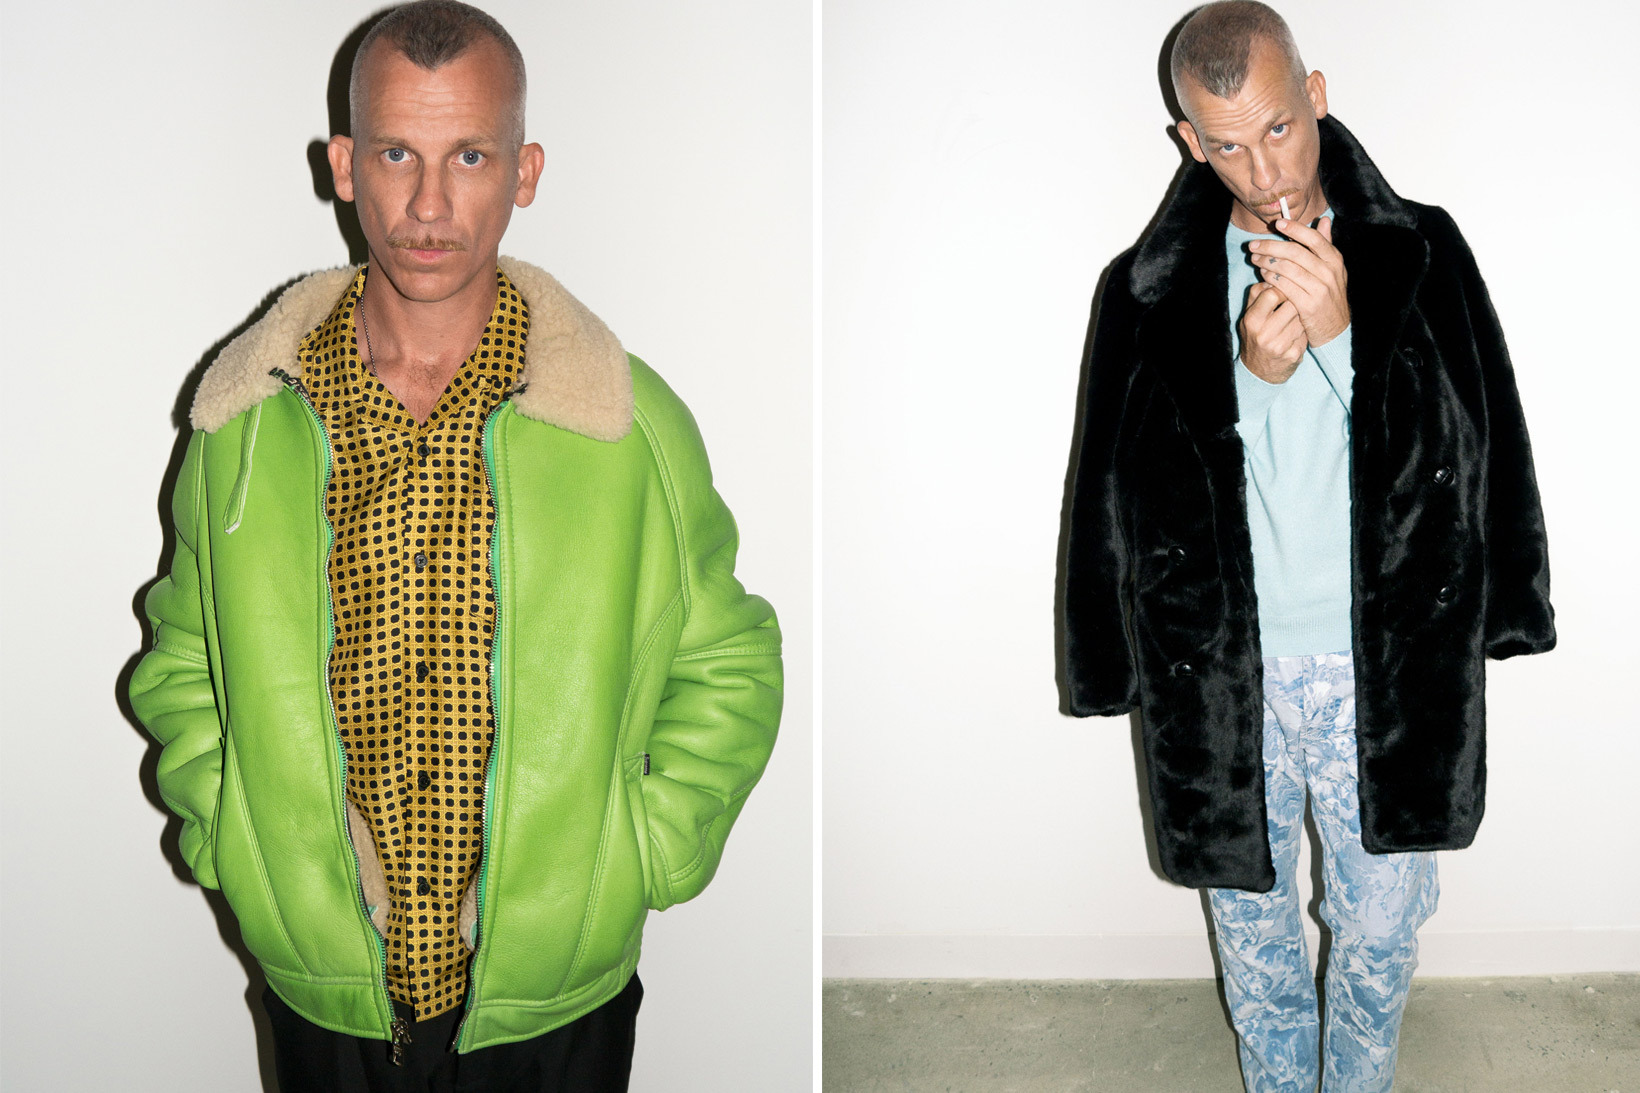 Shooté par Terry Richardson, le lookbook F/W 2016 de Supreme va vous faire plaisir